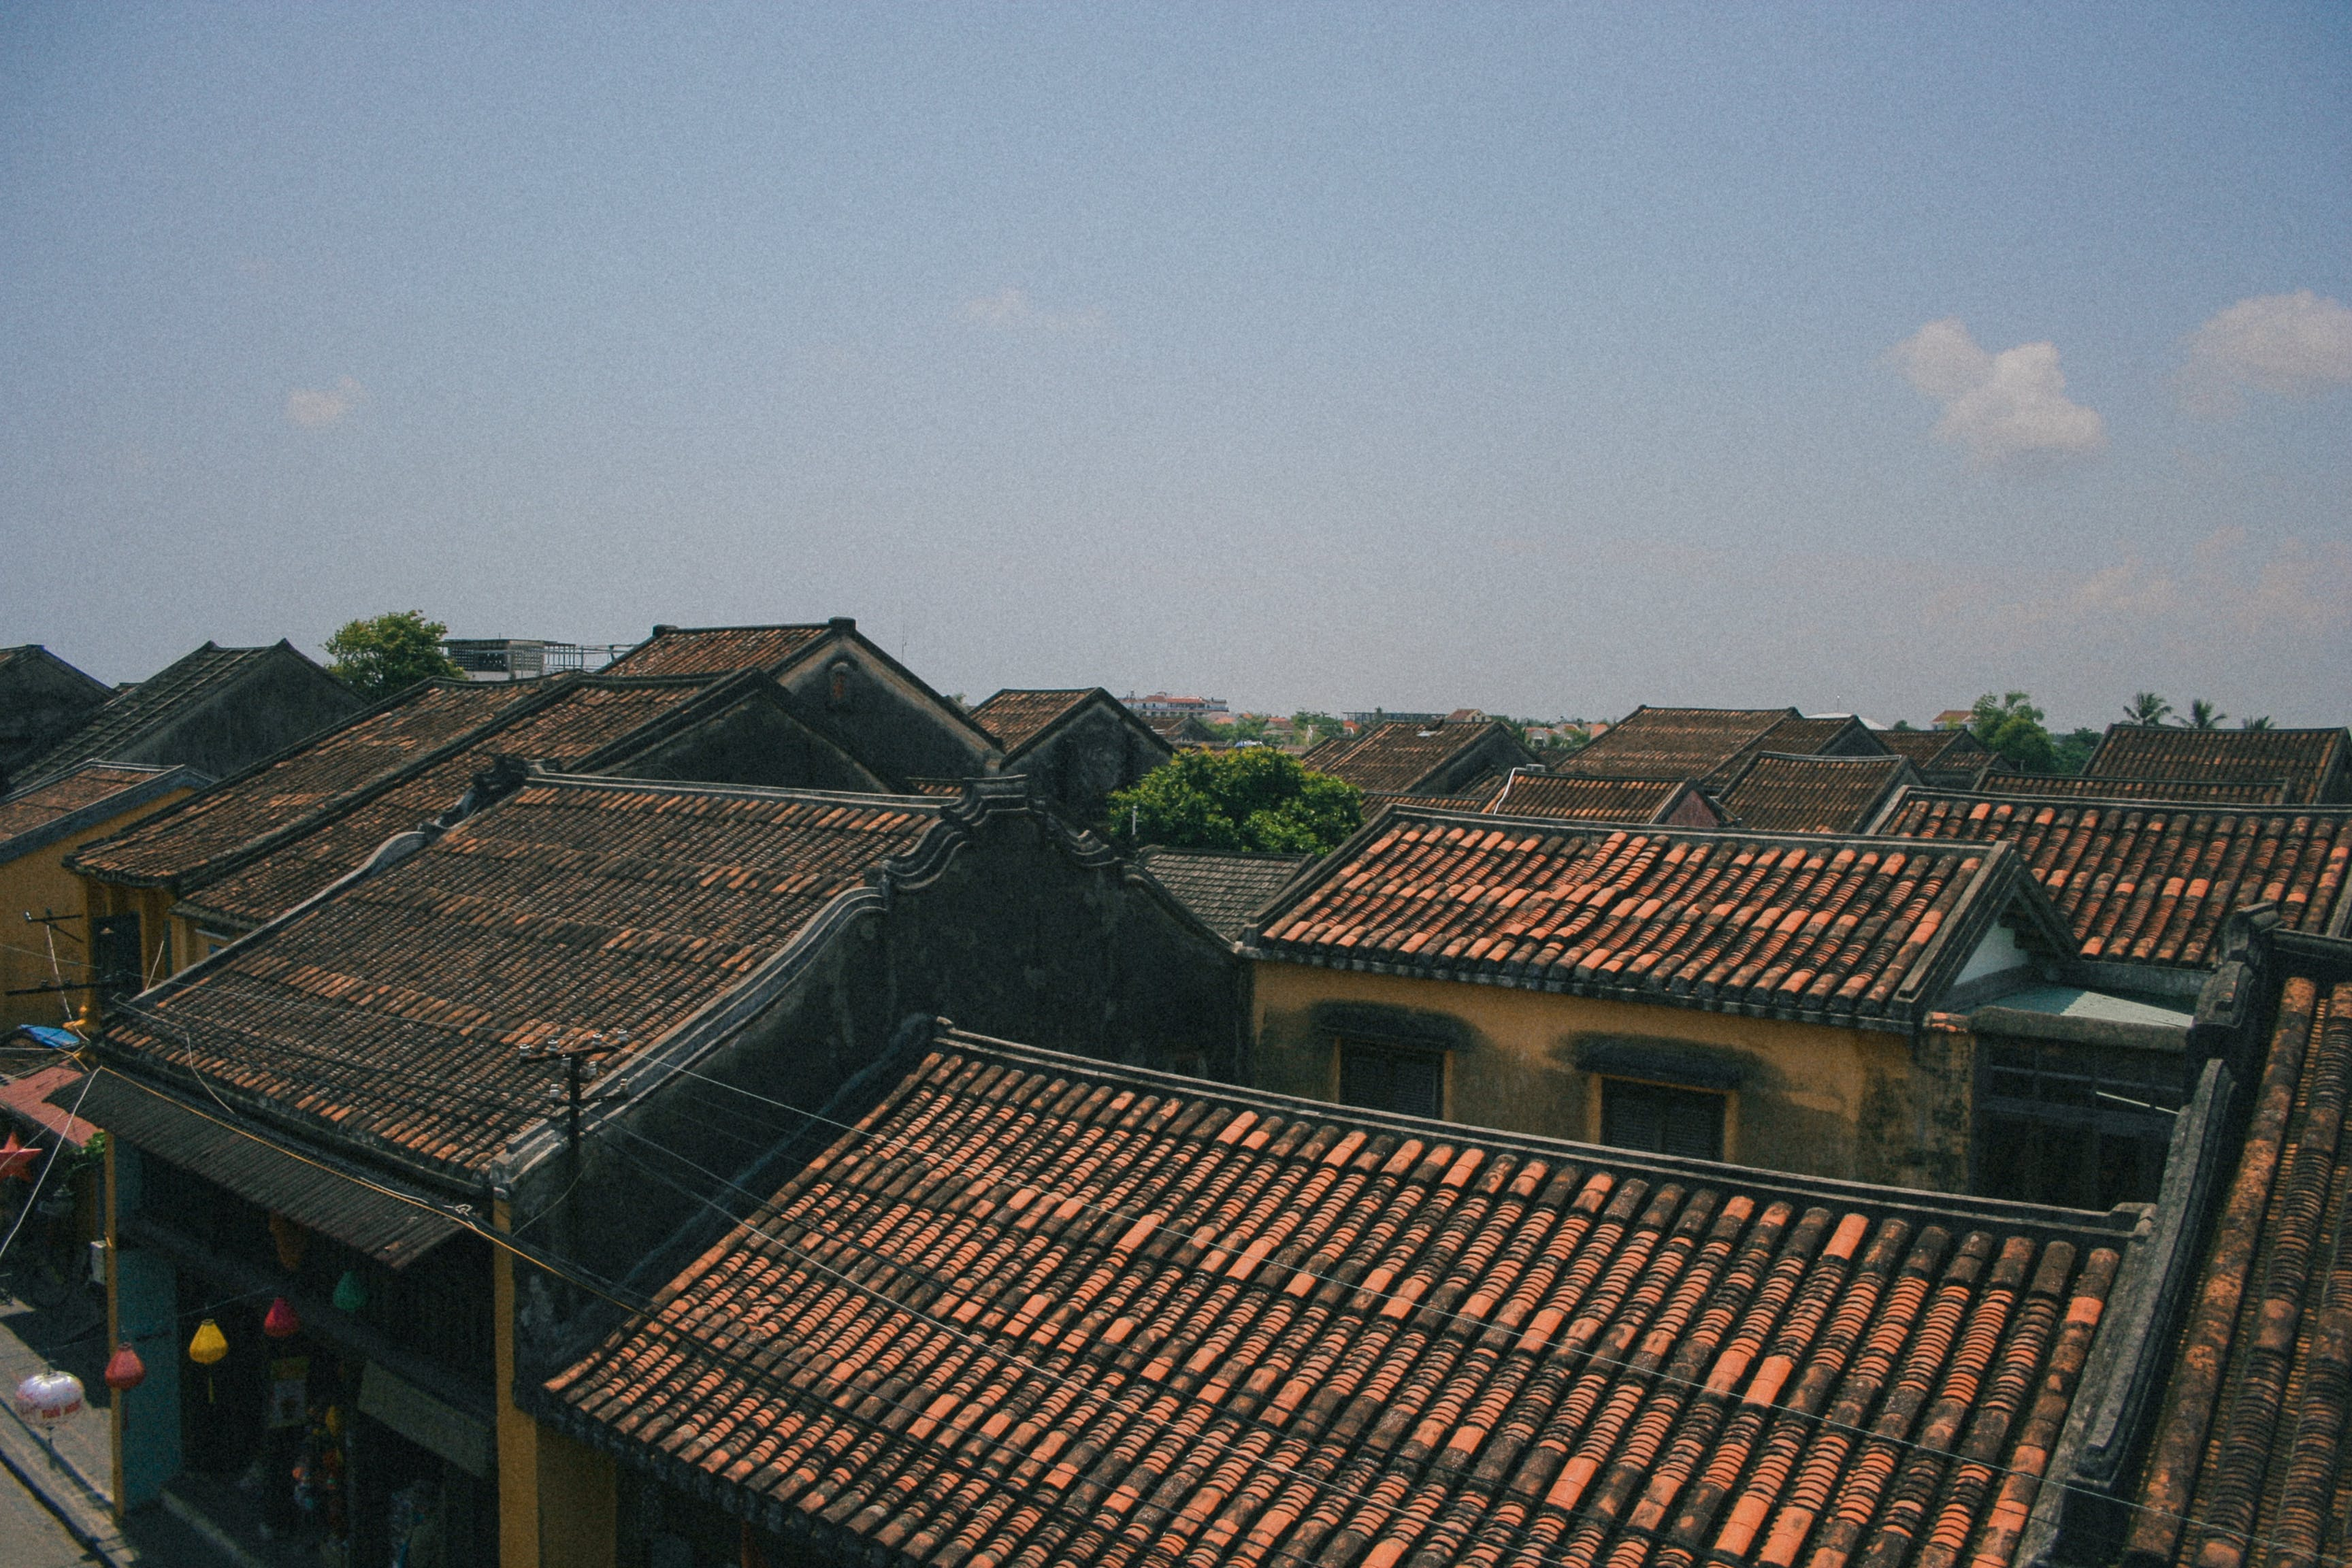 Free stock photo of hội an, house, old town, roofs